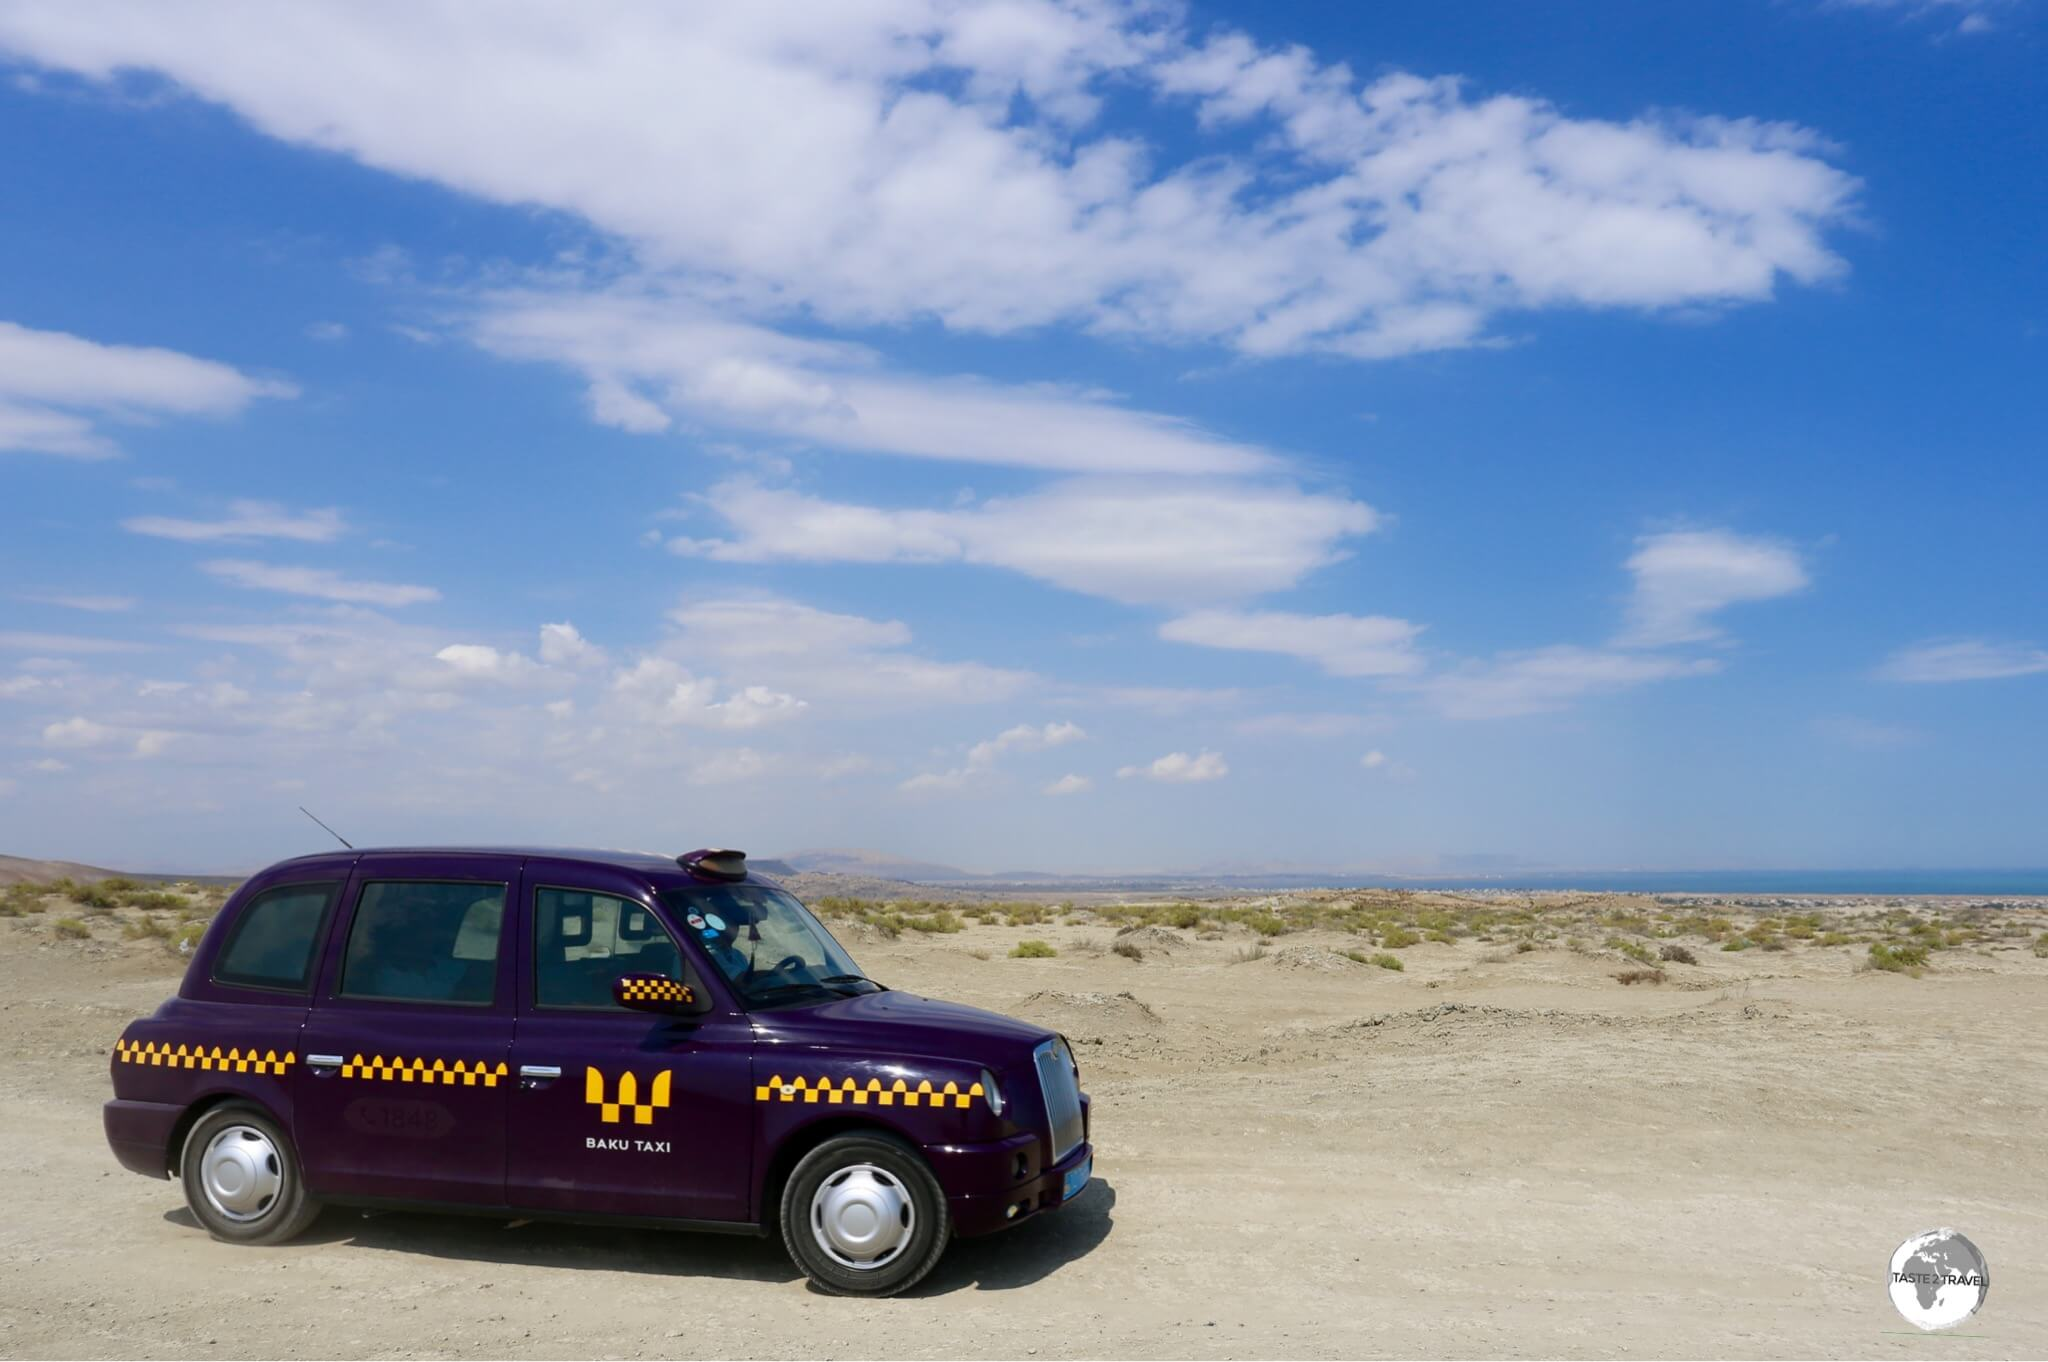 Unlike their London counterparts, Baku Taxis can be hired for off-road adventures.